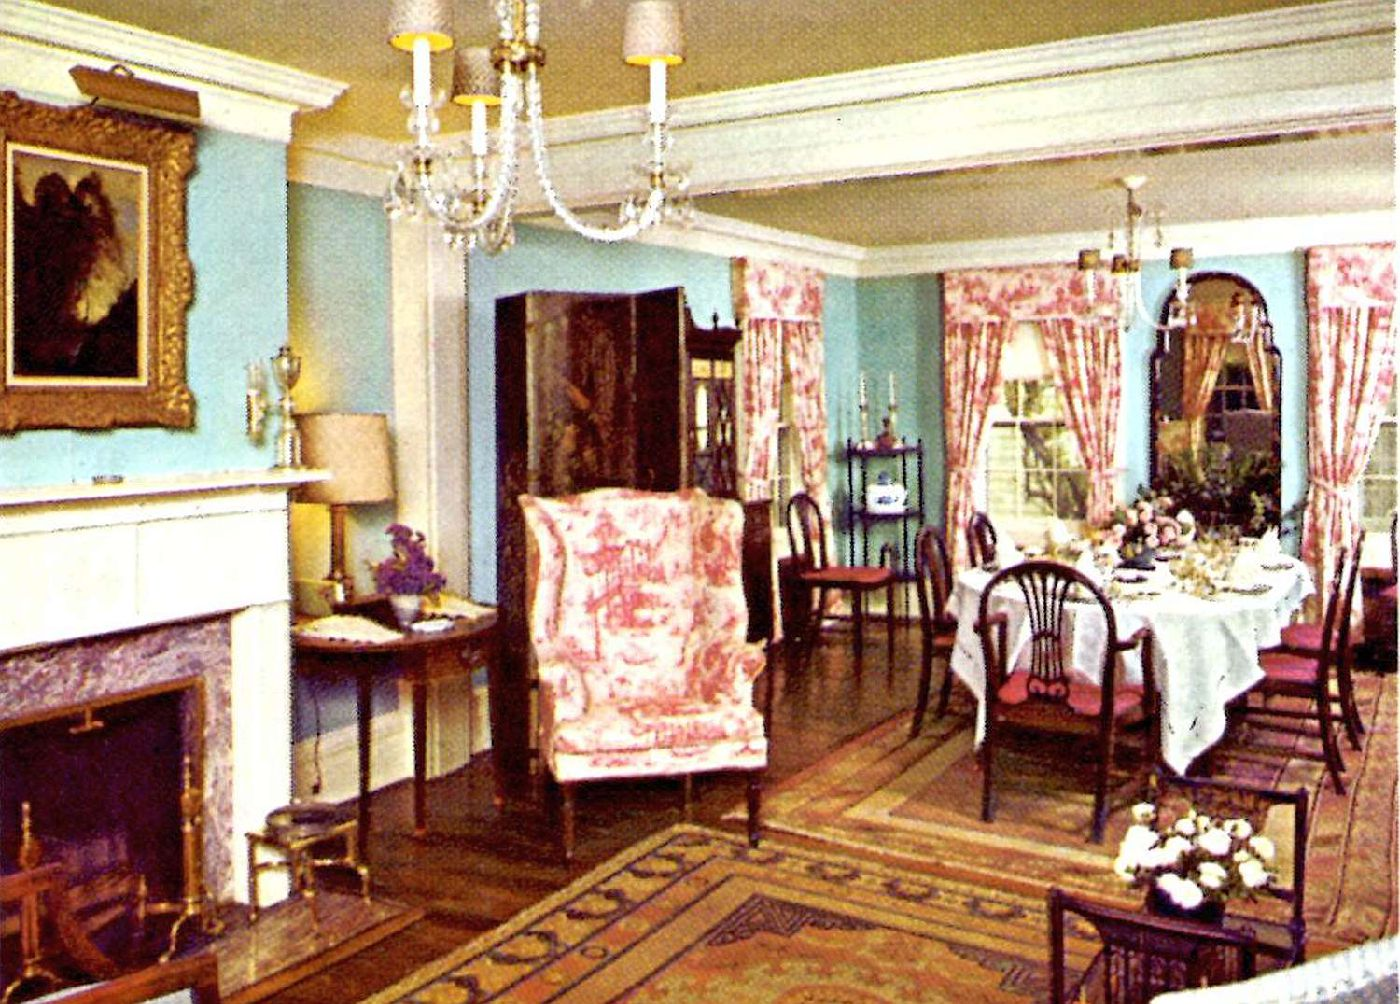 Living room and dining room at Reader's Digest guest house, 1977